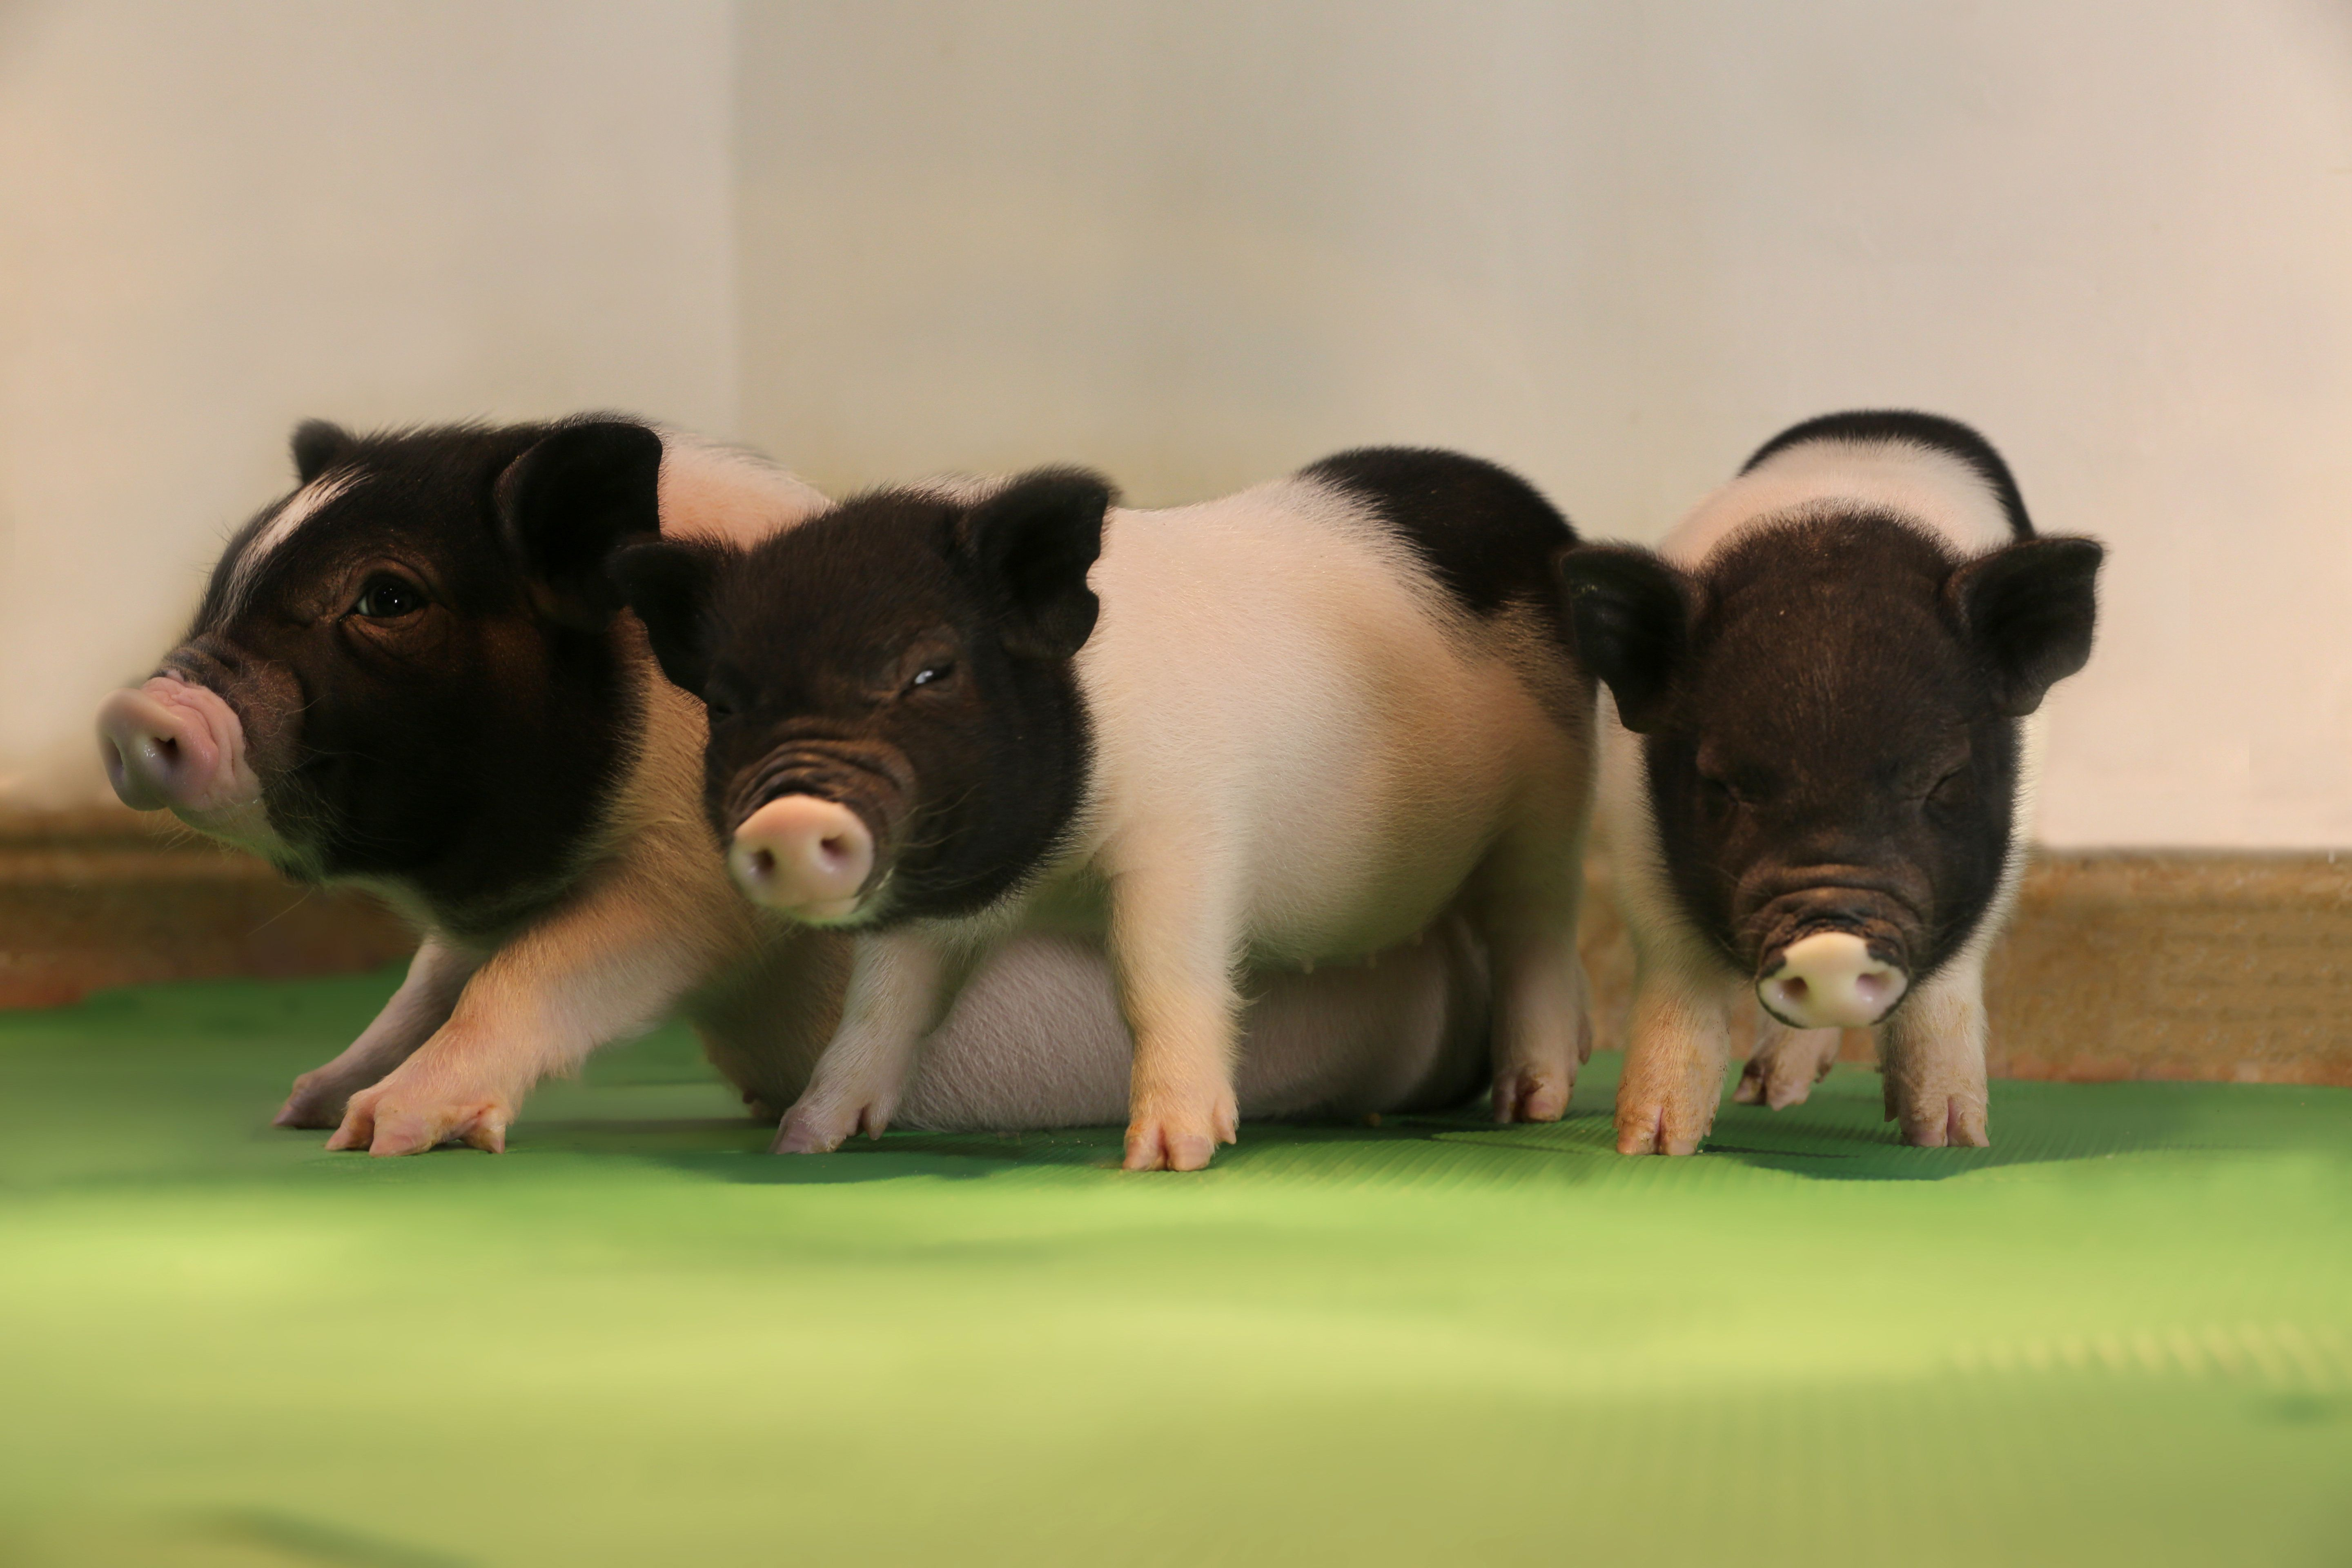 Birth of CRISPR'd pigs advances hopes for turning swine into organ donors